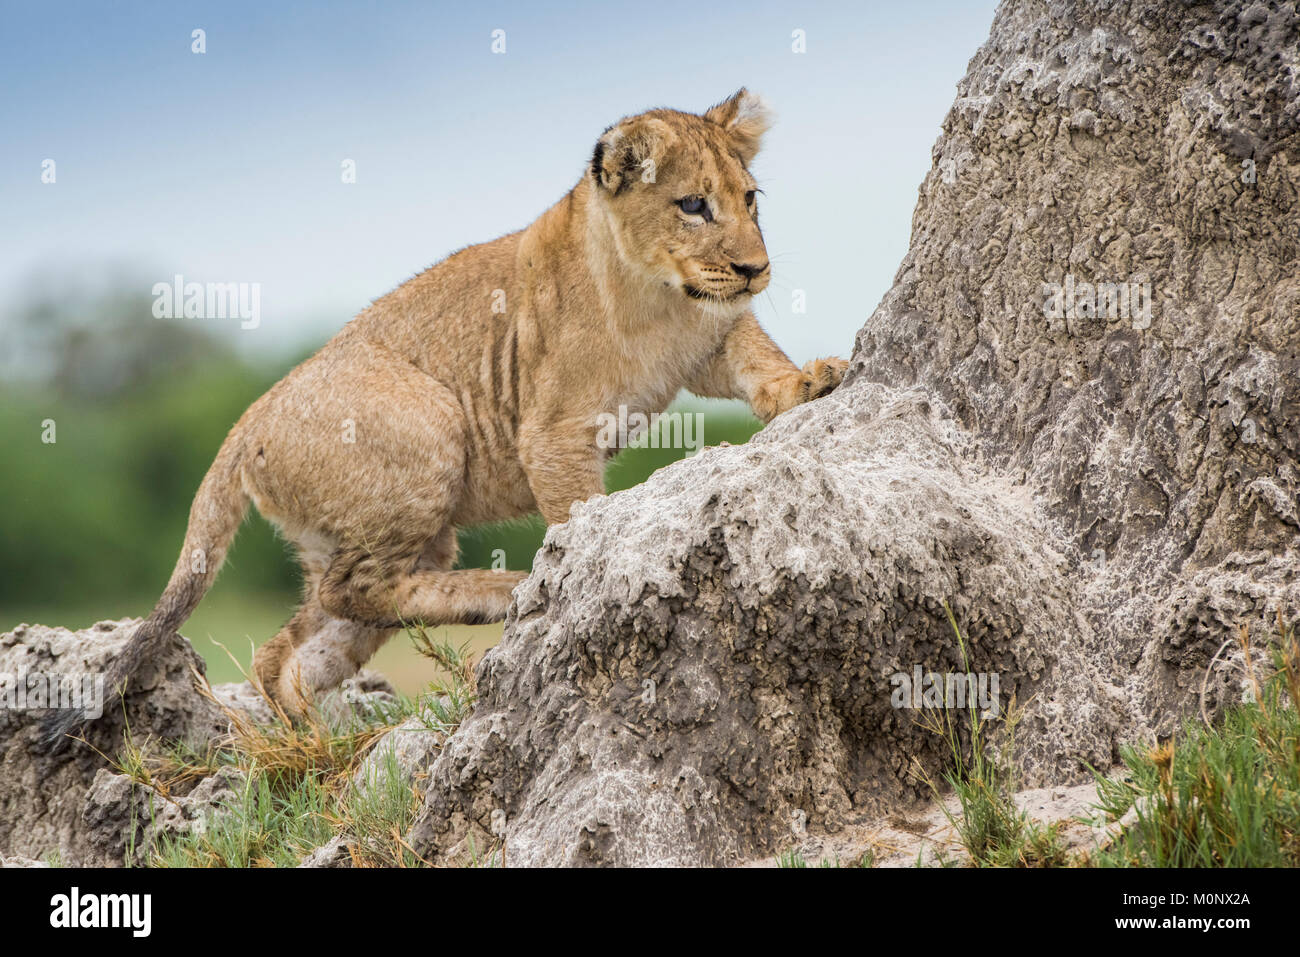 Young Lion (Panthera leo) climbs on a termite mound,Savuti,Chobe National Park,Chobe District,Botswana - Stock Image